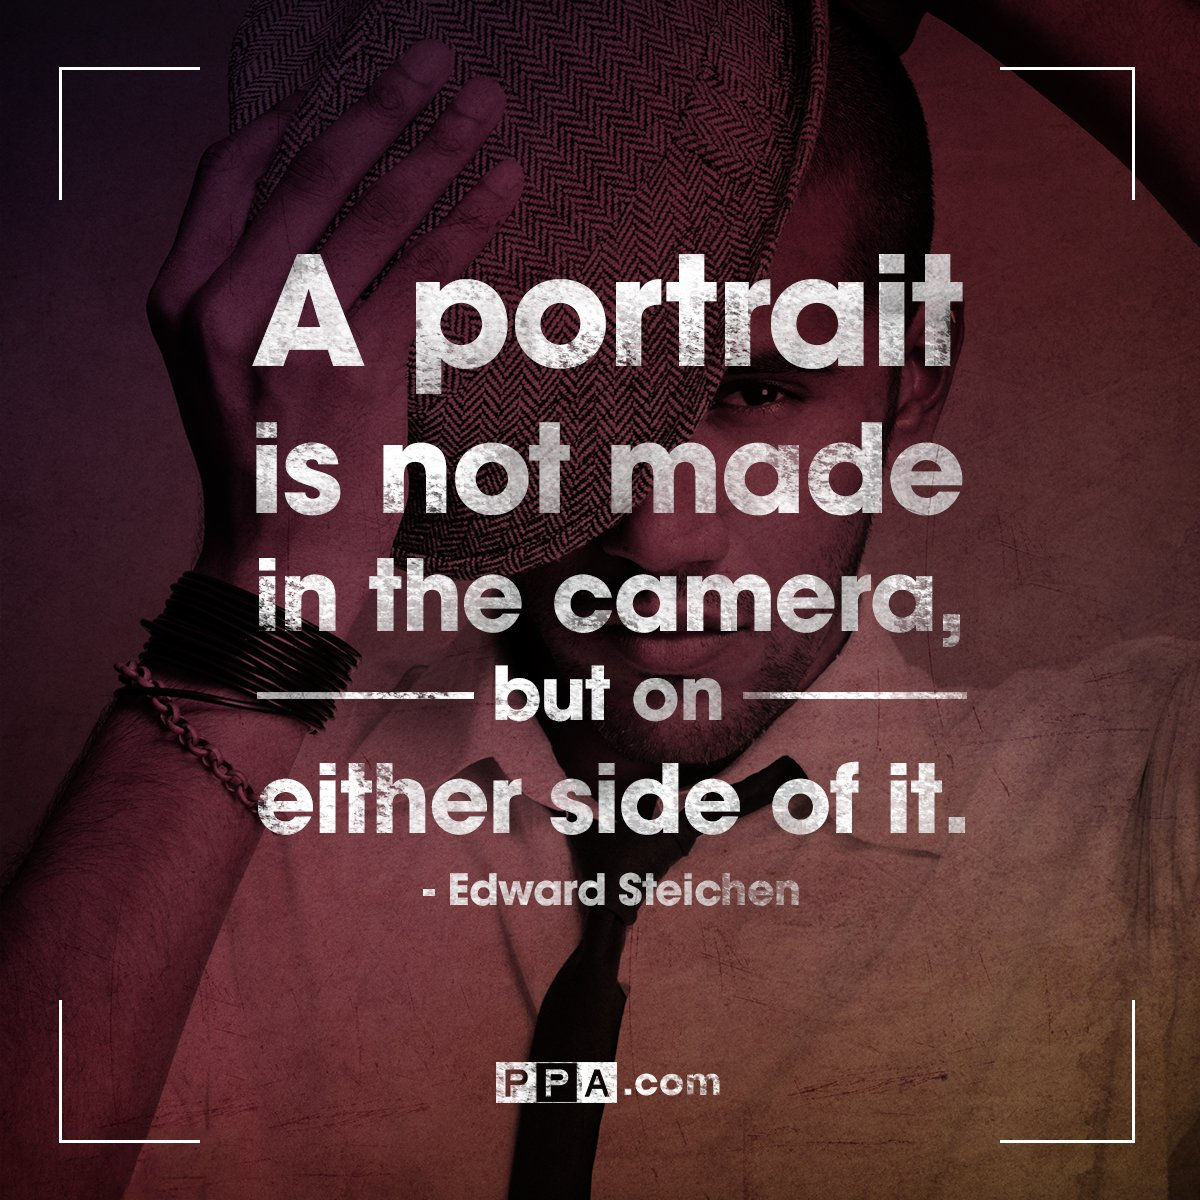 What's your favorite photography quote? #inspiration #quotes #professionalphotography https://t.co/KkgoypACN4